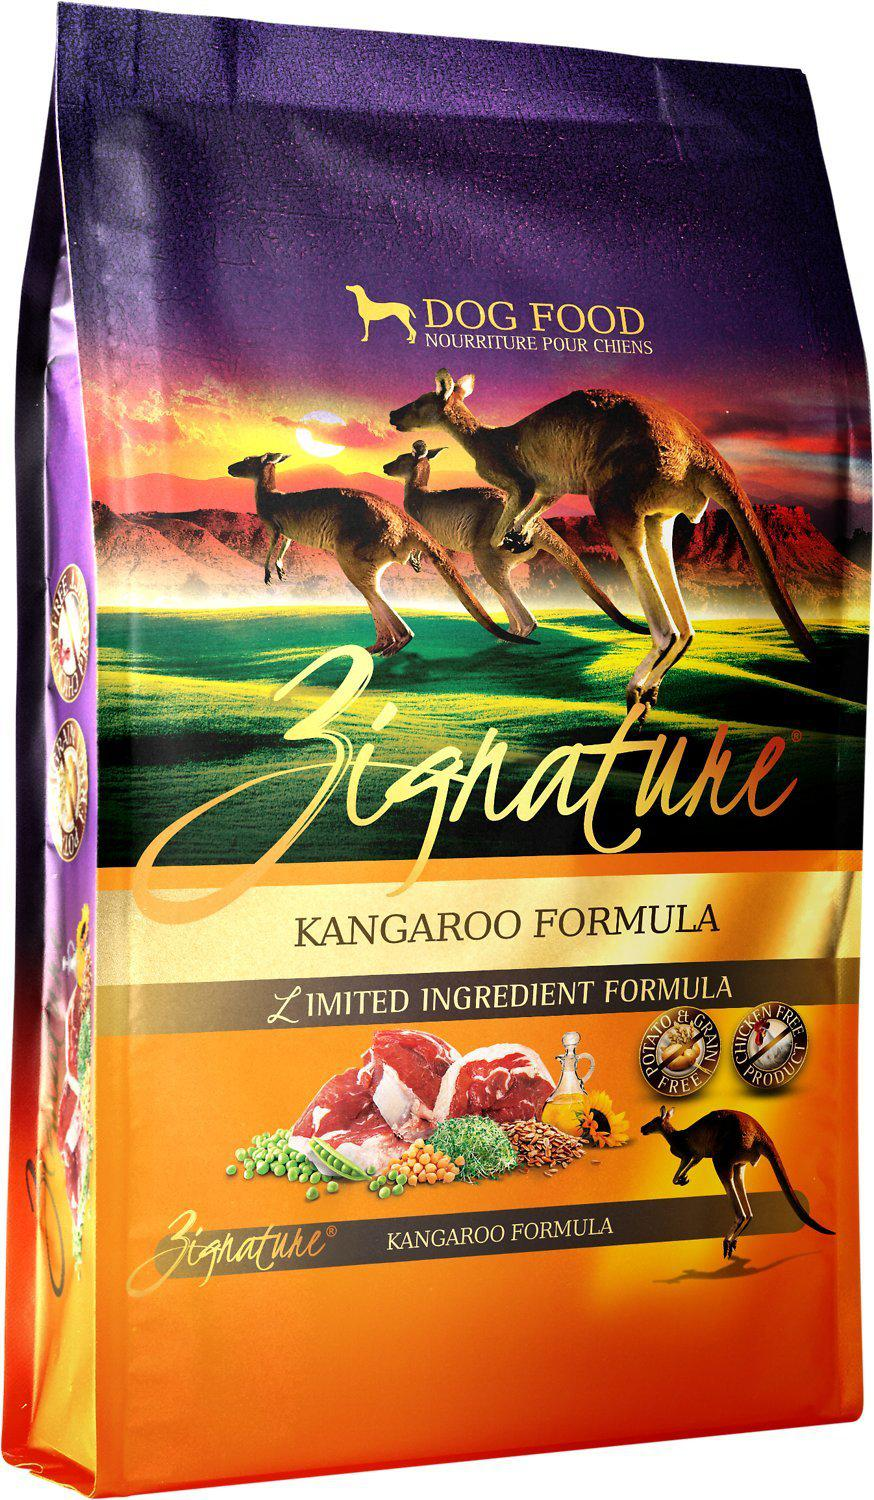 Zignature Kangaroo Limited Ingredient Formula Grain-Free Dry Dog Food-Le Pup Pet Supplies and Grooming